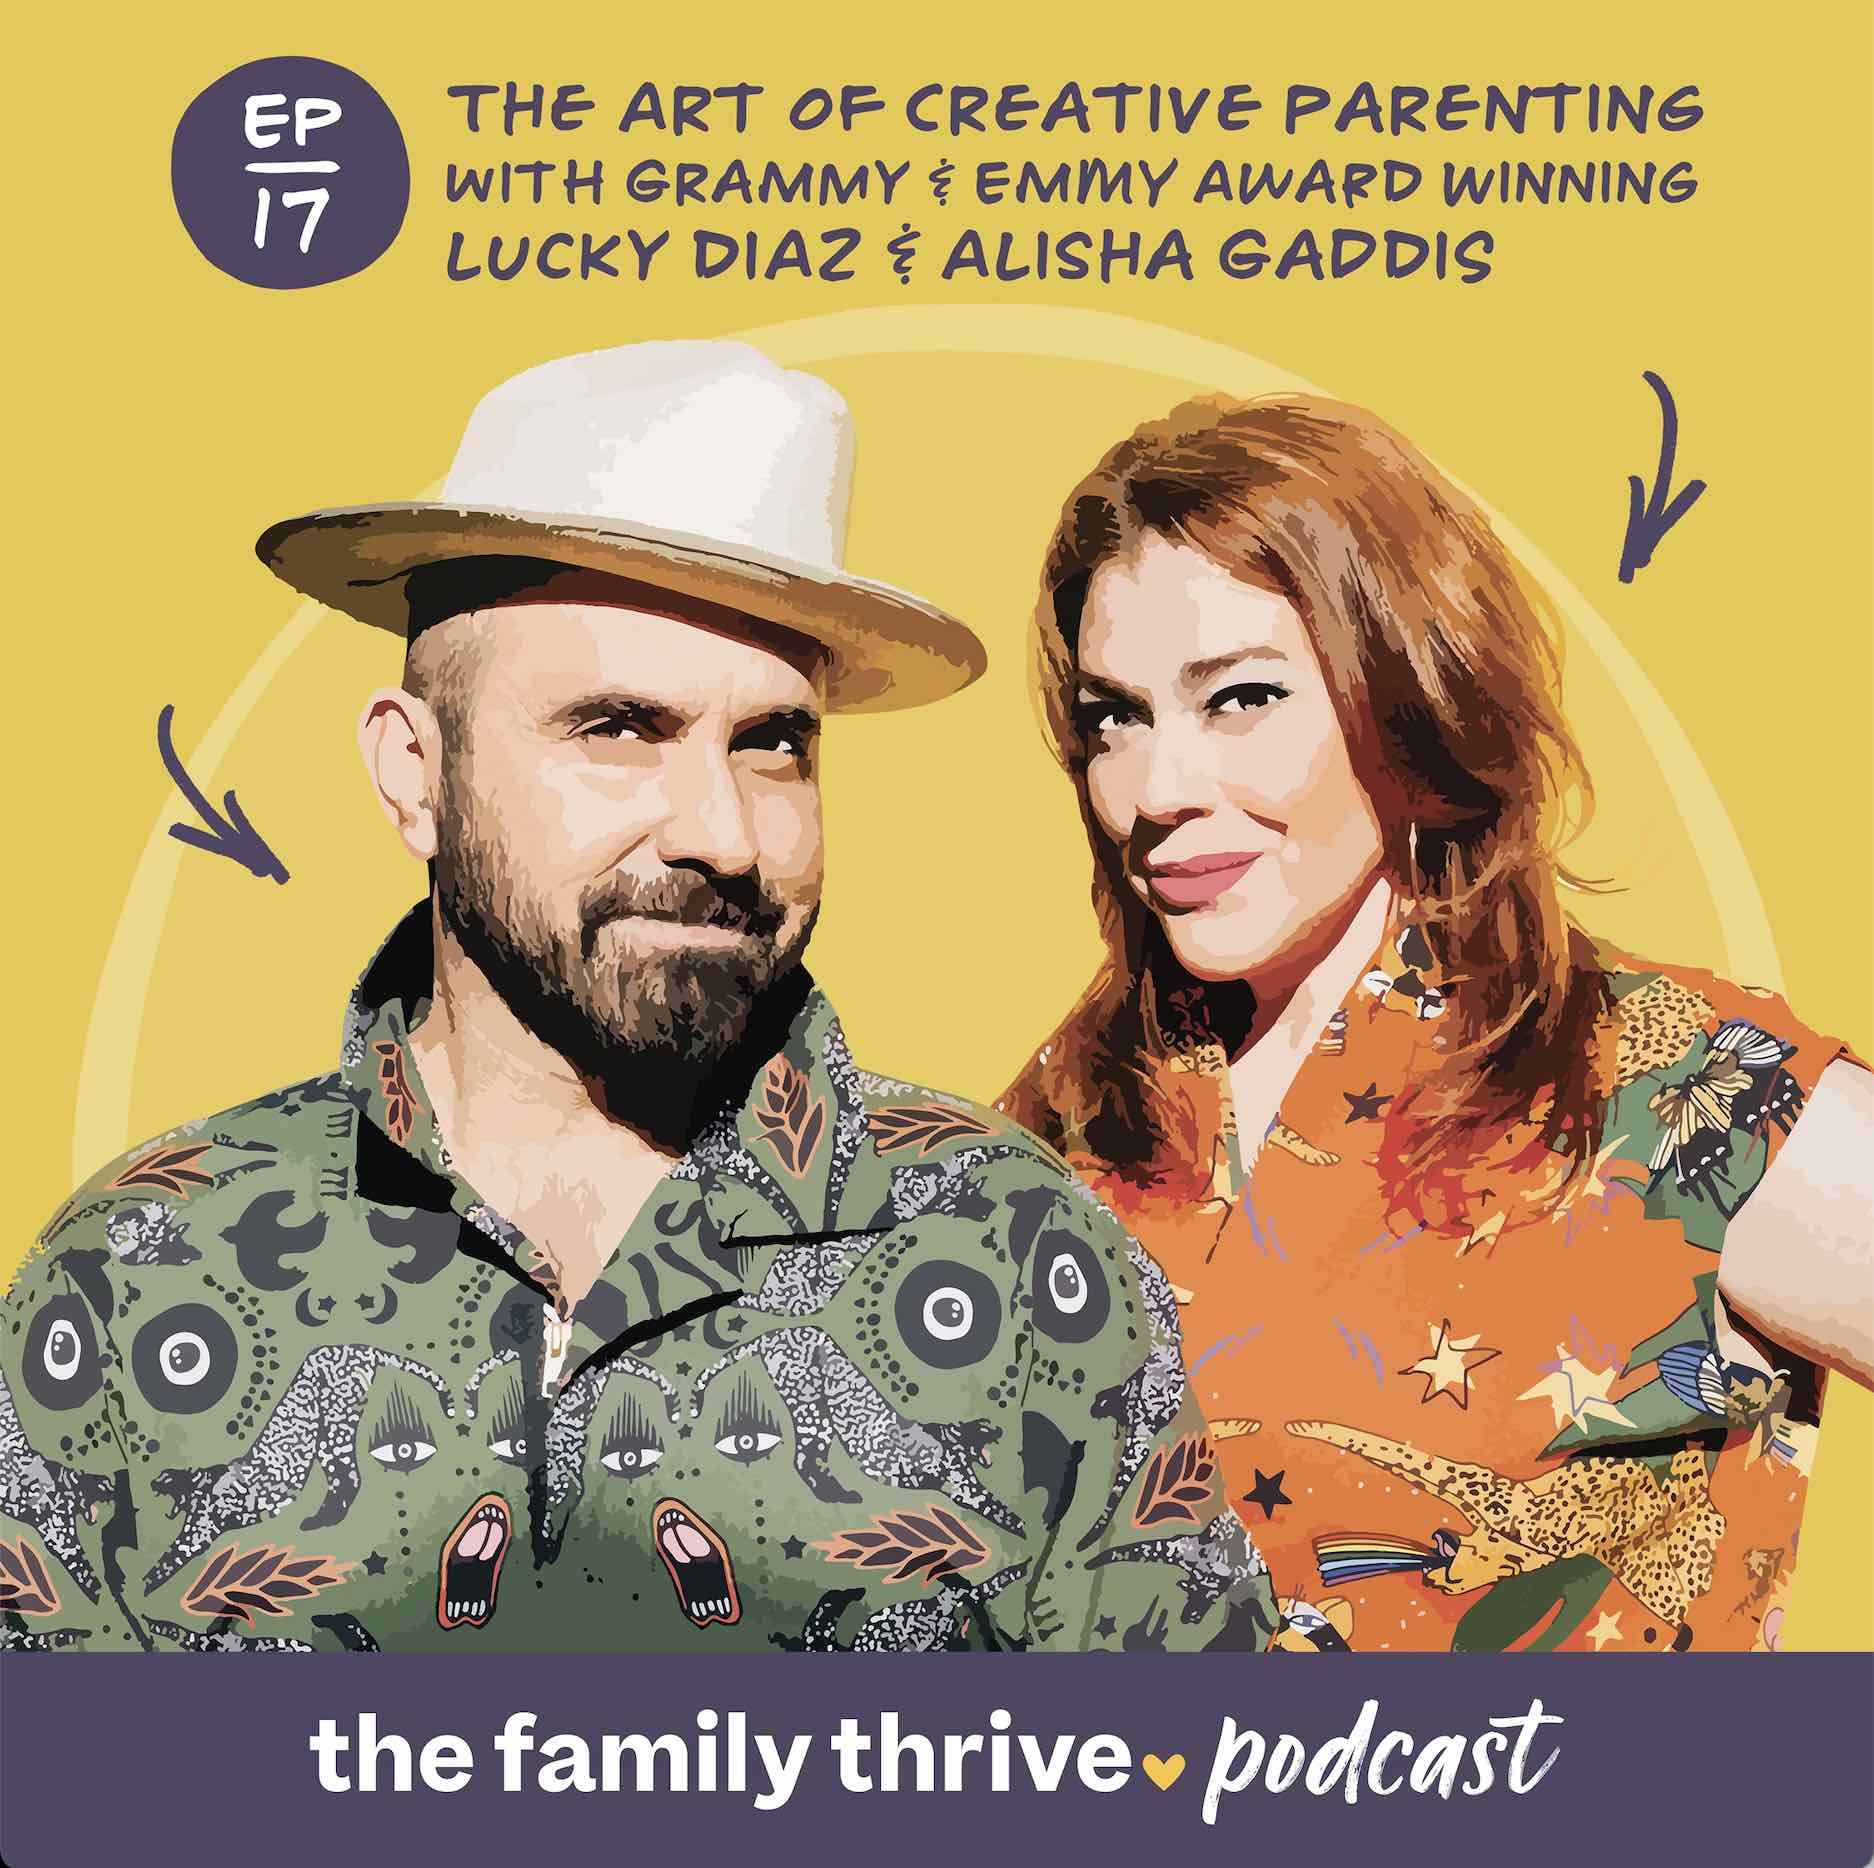 Podcast Ep. 17: The Art of Creative Parenting with Grammy and Emmy Award-Winning Lucky Diaz and Alisha Gaddis